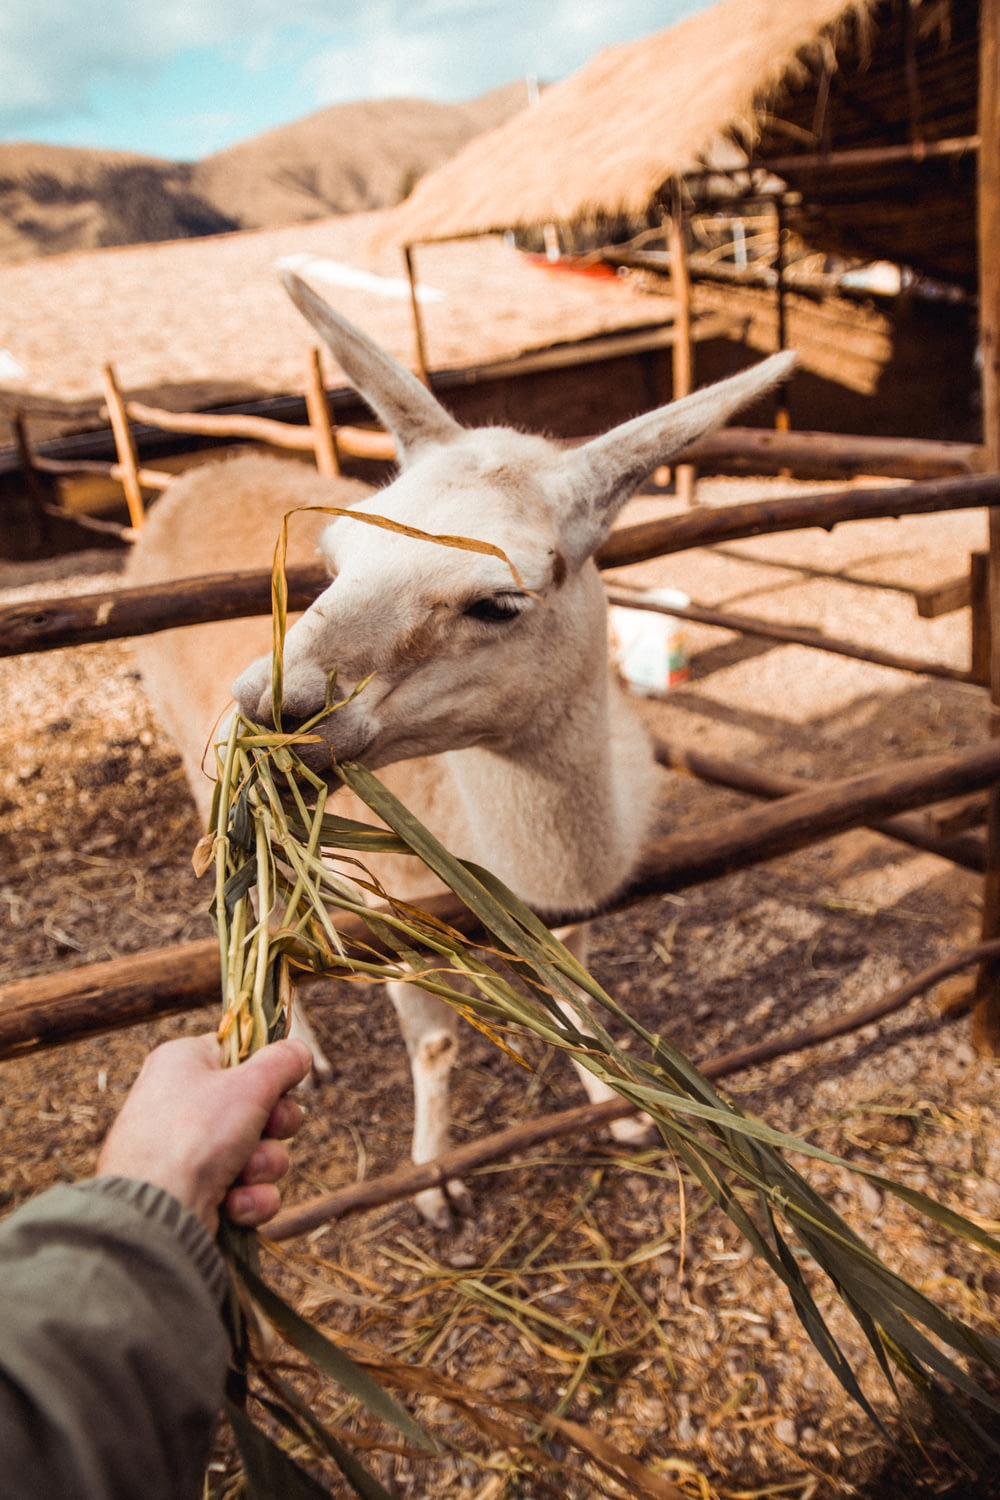 person feeding white goat